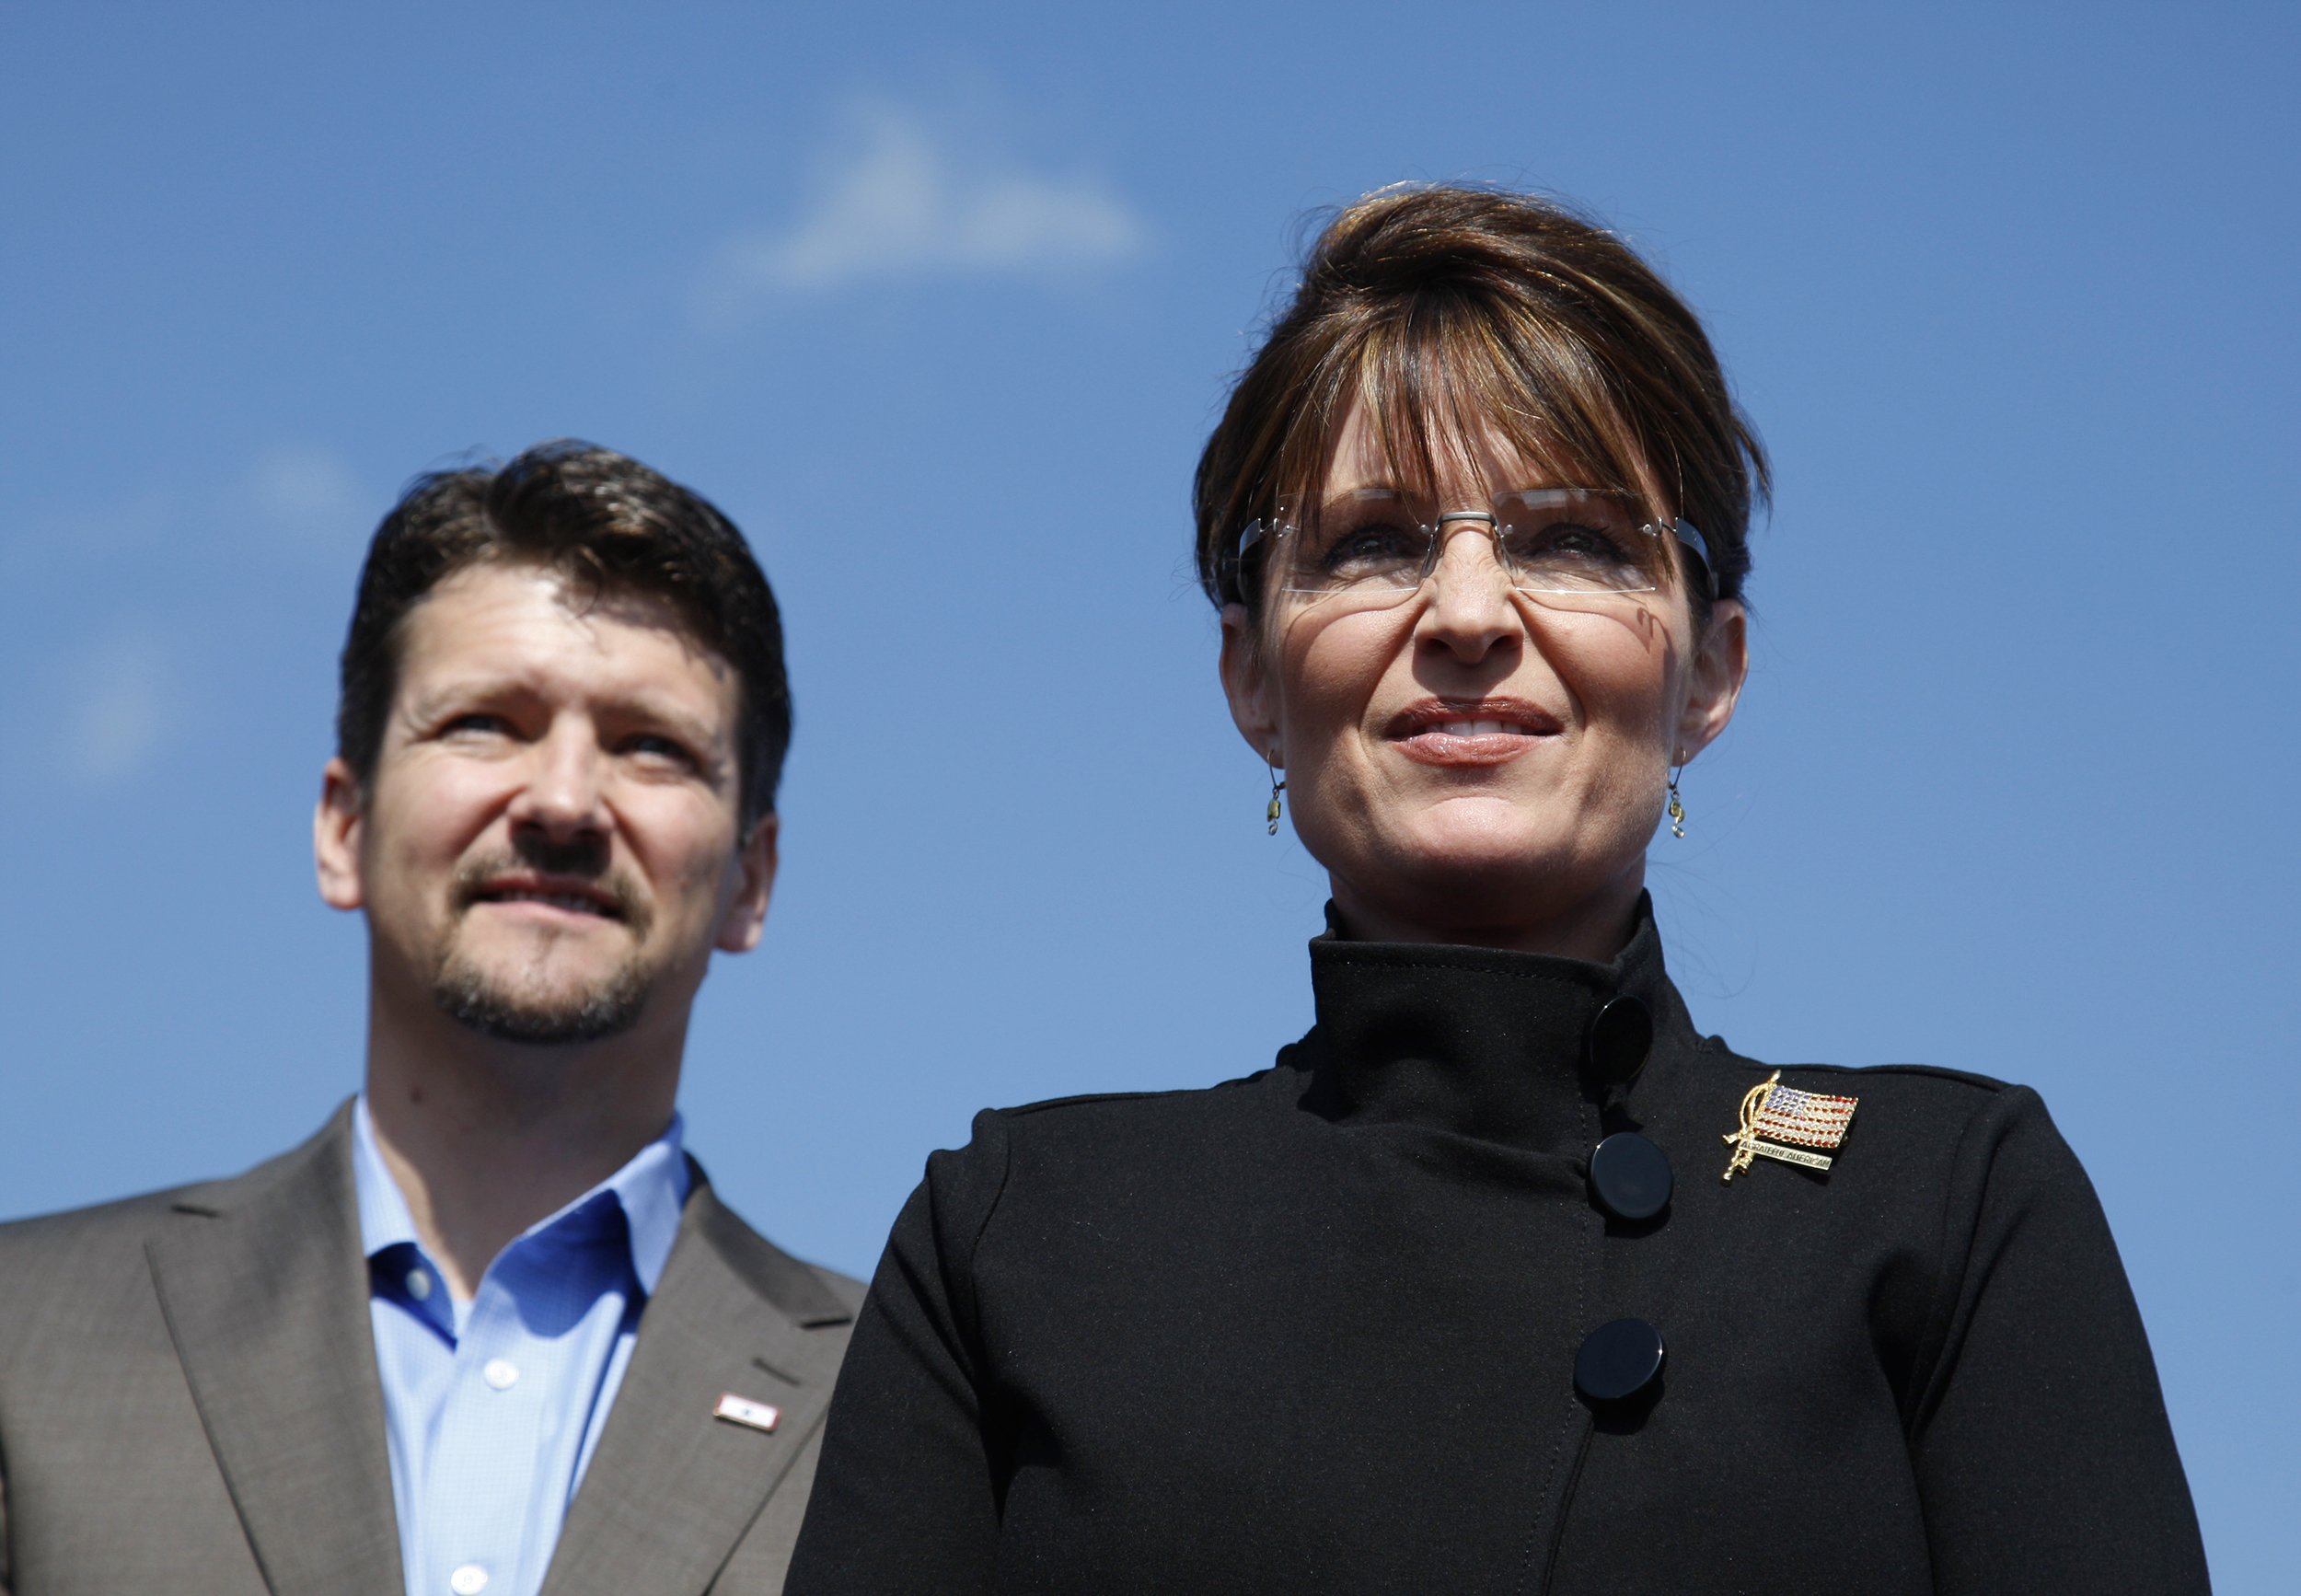 Track Palin, son of Sarah Palin, called officers 'peasants' before arrest